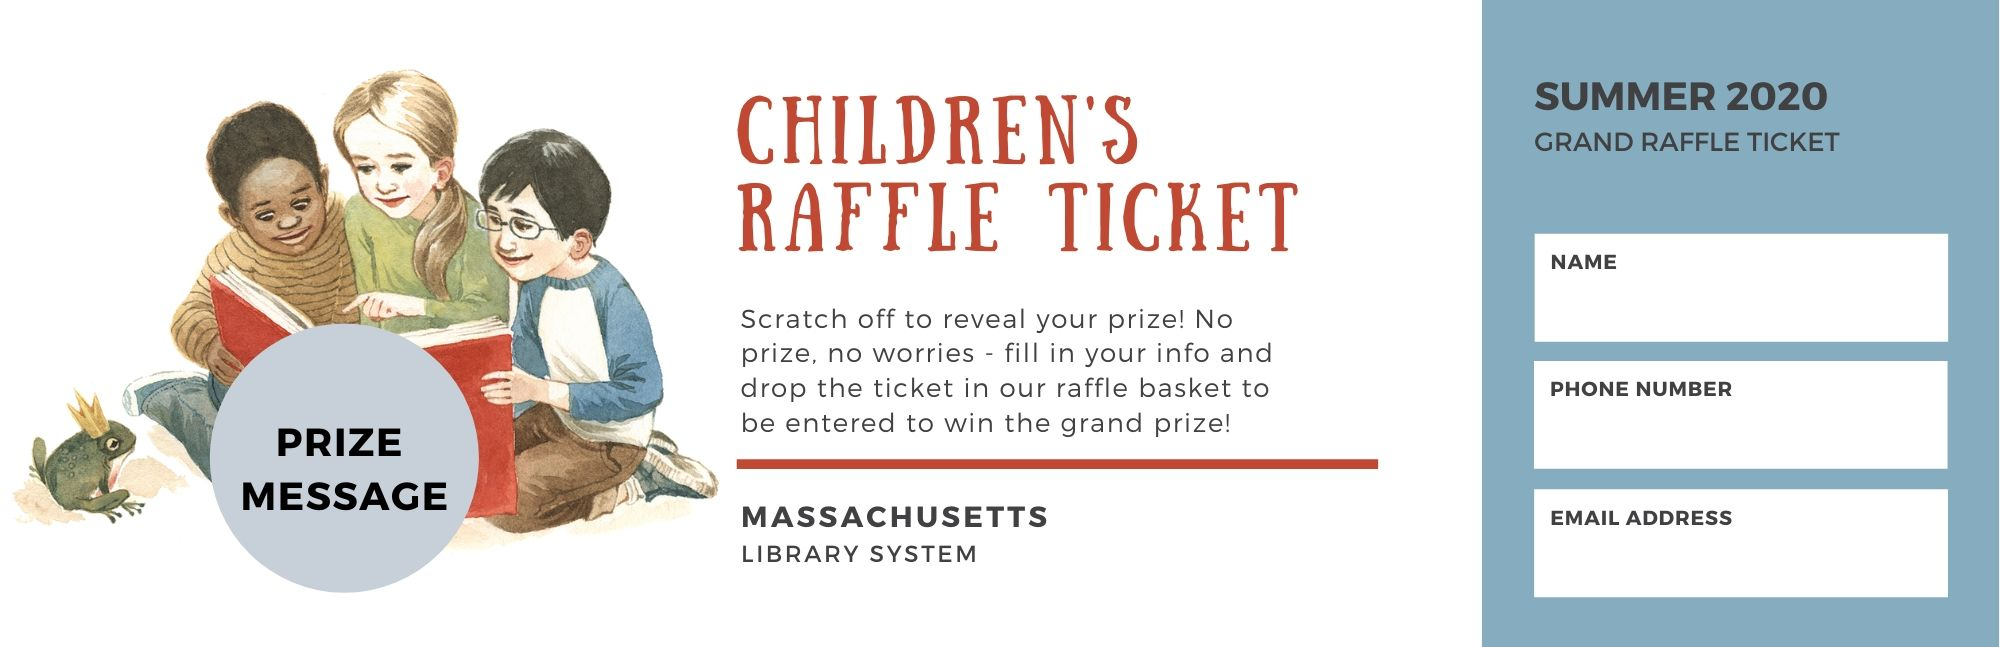 scratch ticket for summer raffle